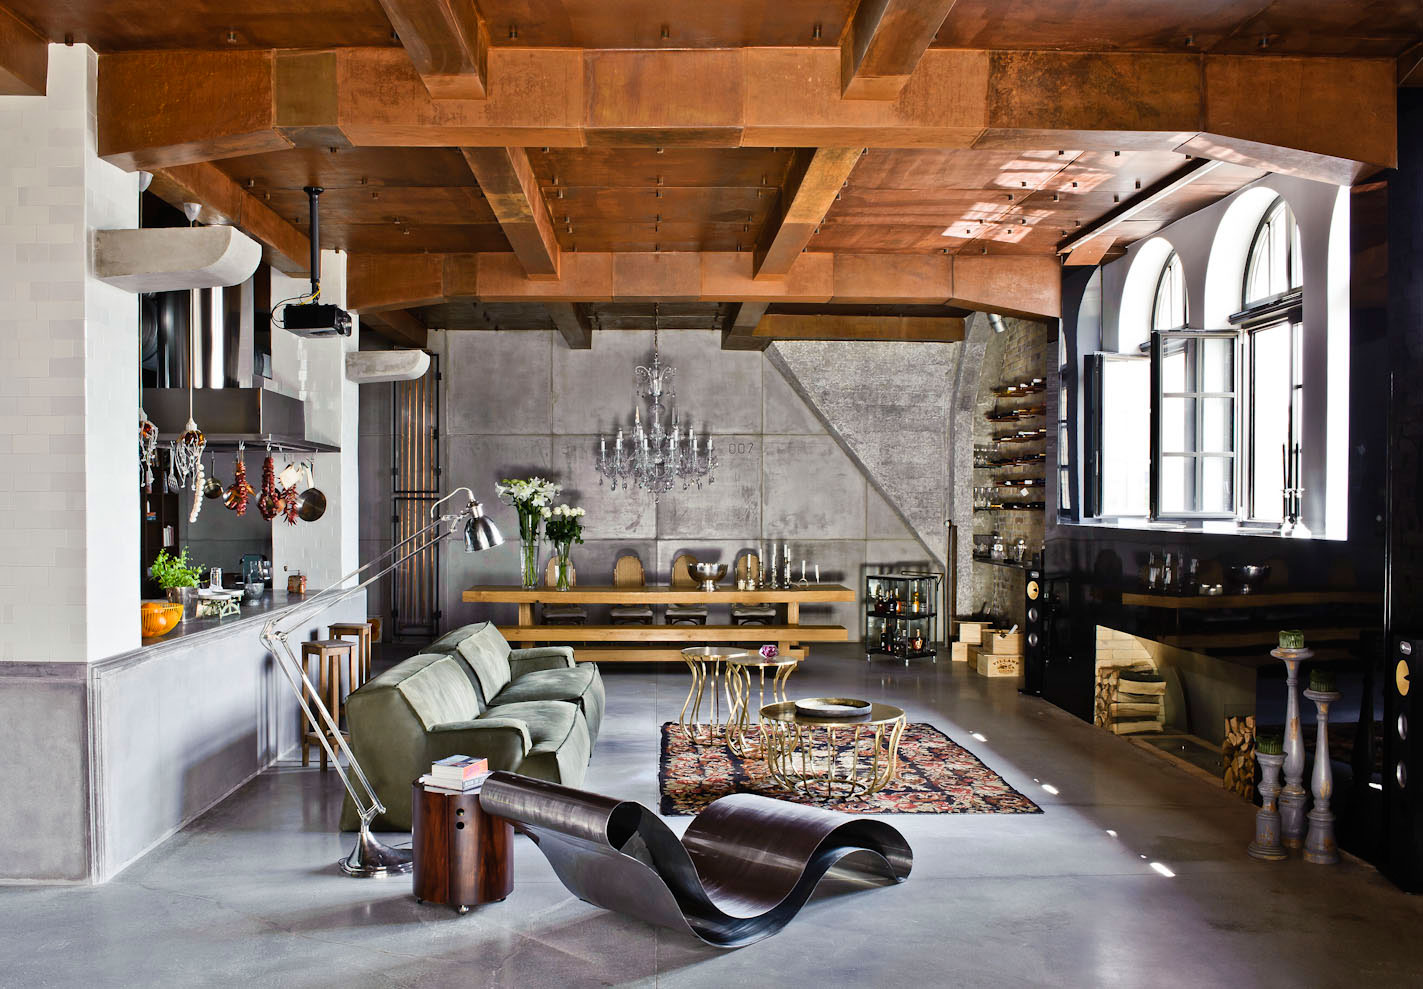 The Pros And Cons Of Living In A Loft : eclectic loft apartment budapest from www.homedit.com size 1423 x 989 jpeg 277kB